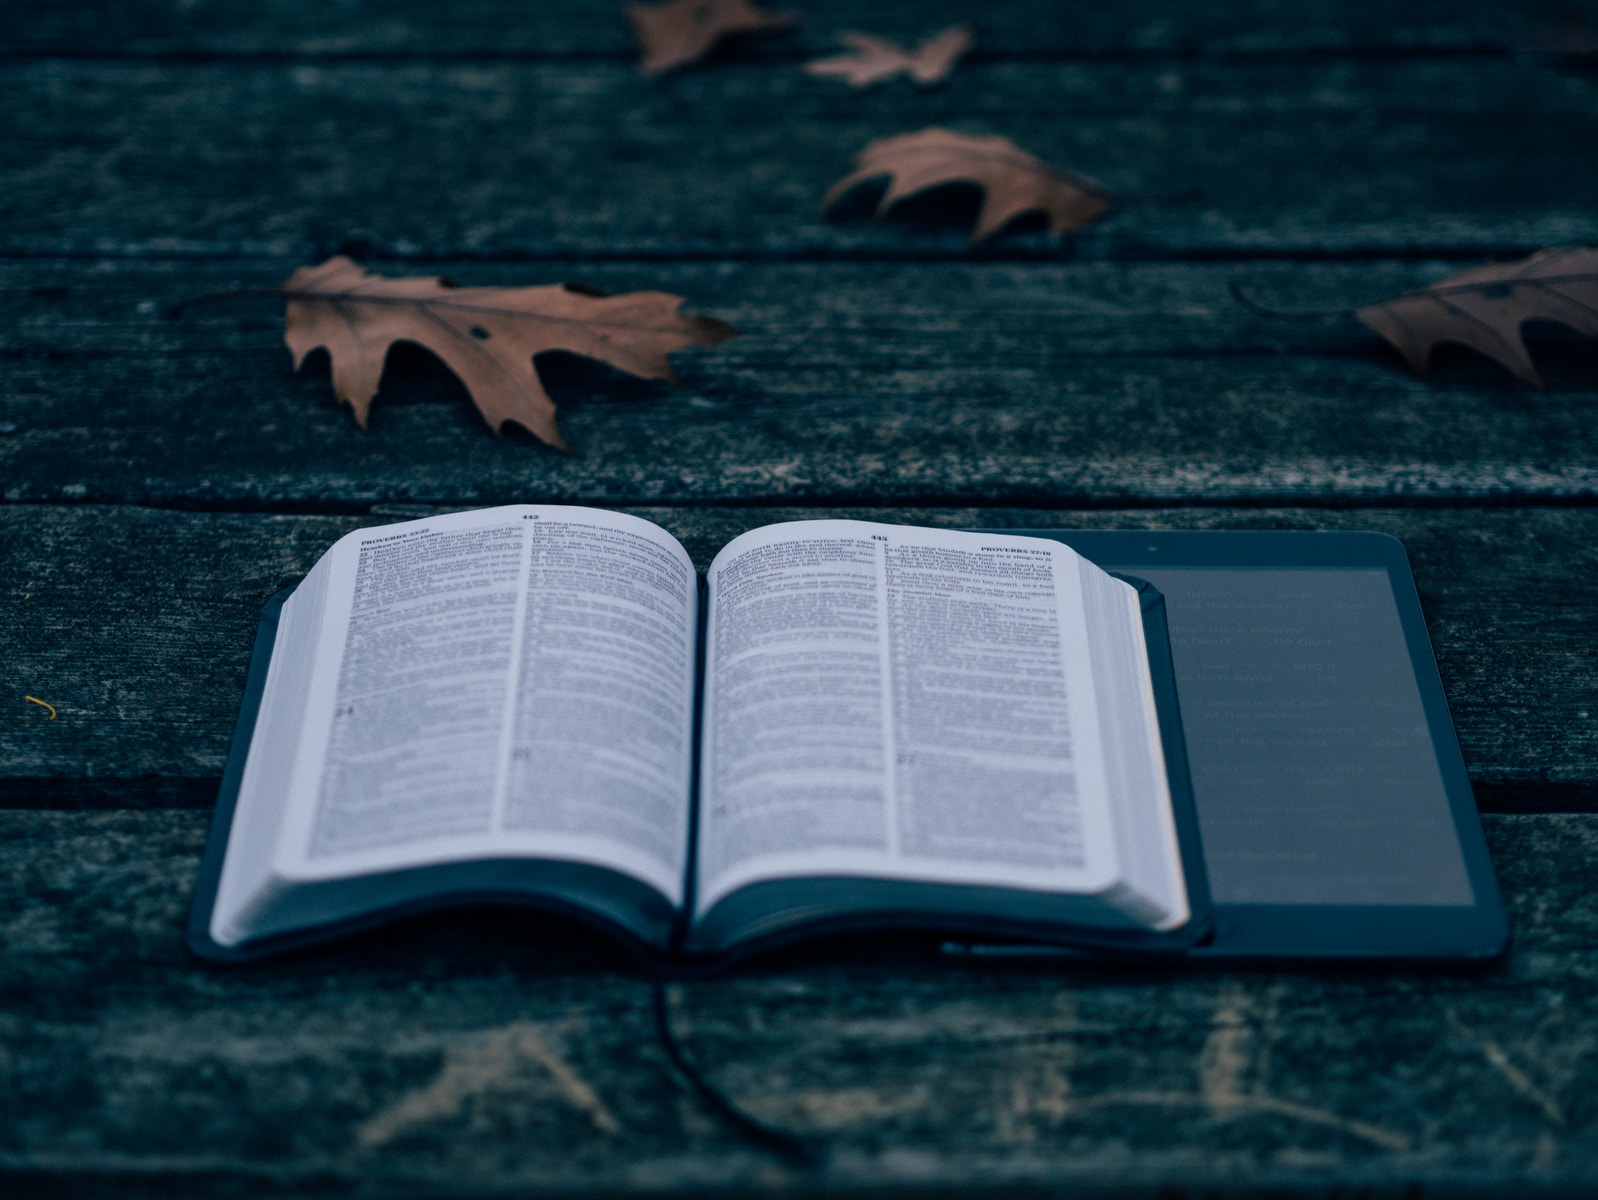 open Bible on top of tablet